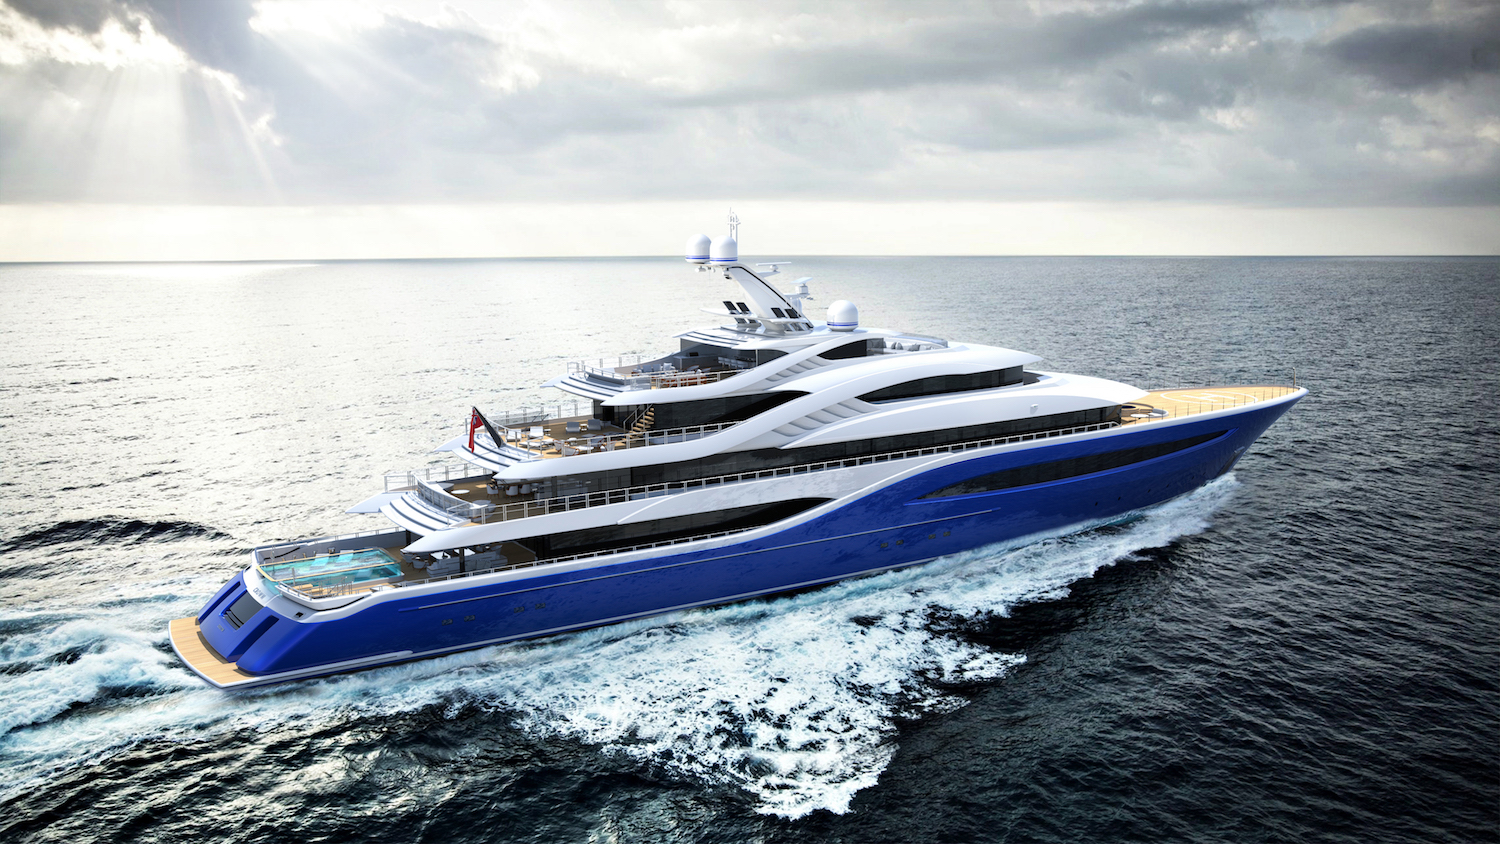 Turquoise Yachts Project Vento cruising from rear